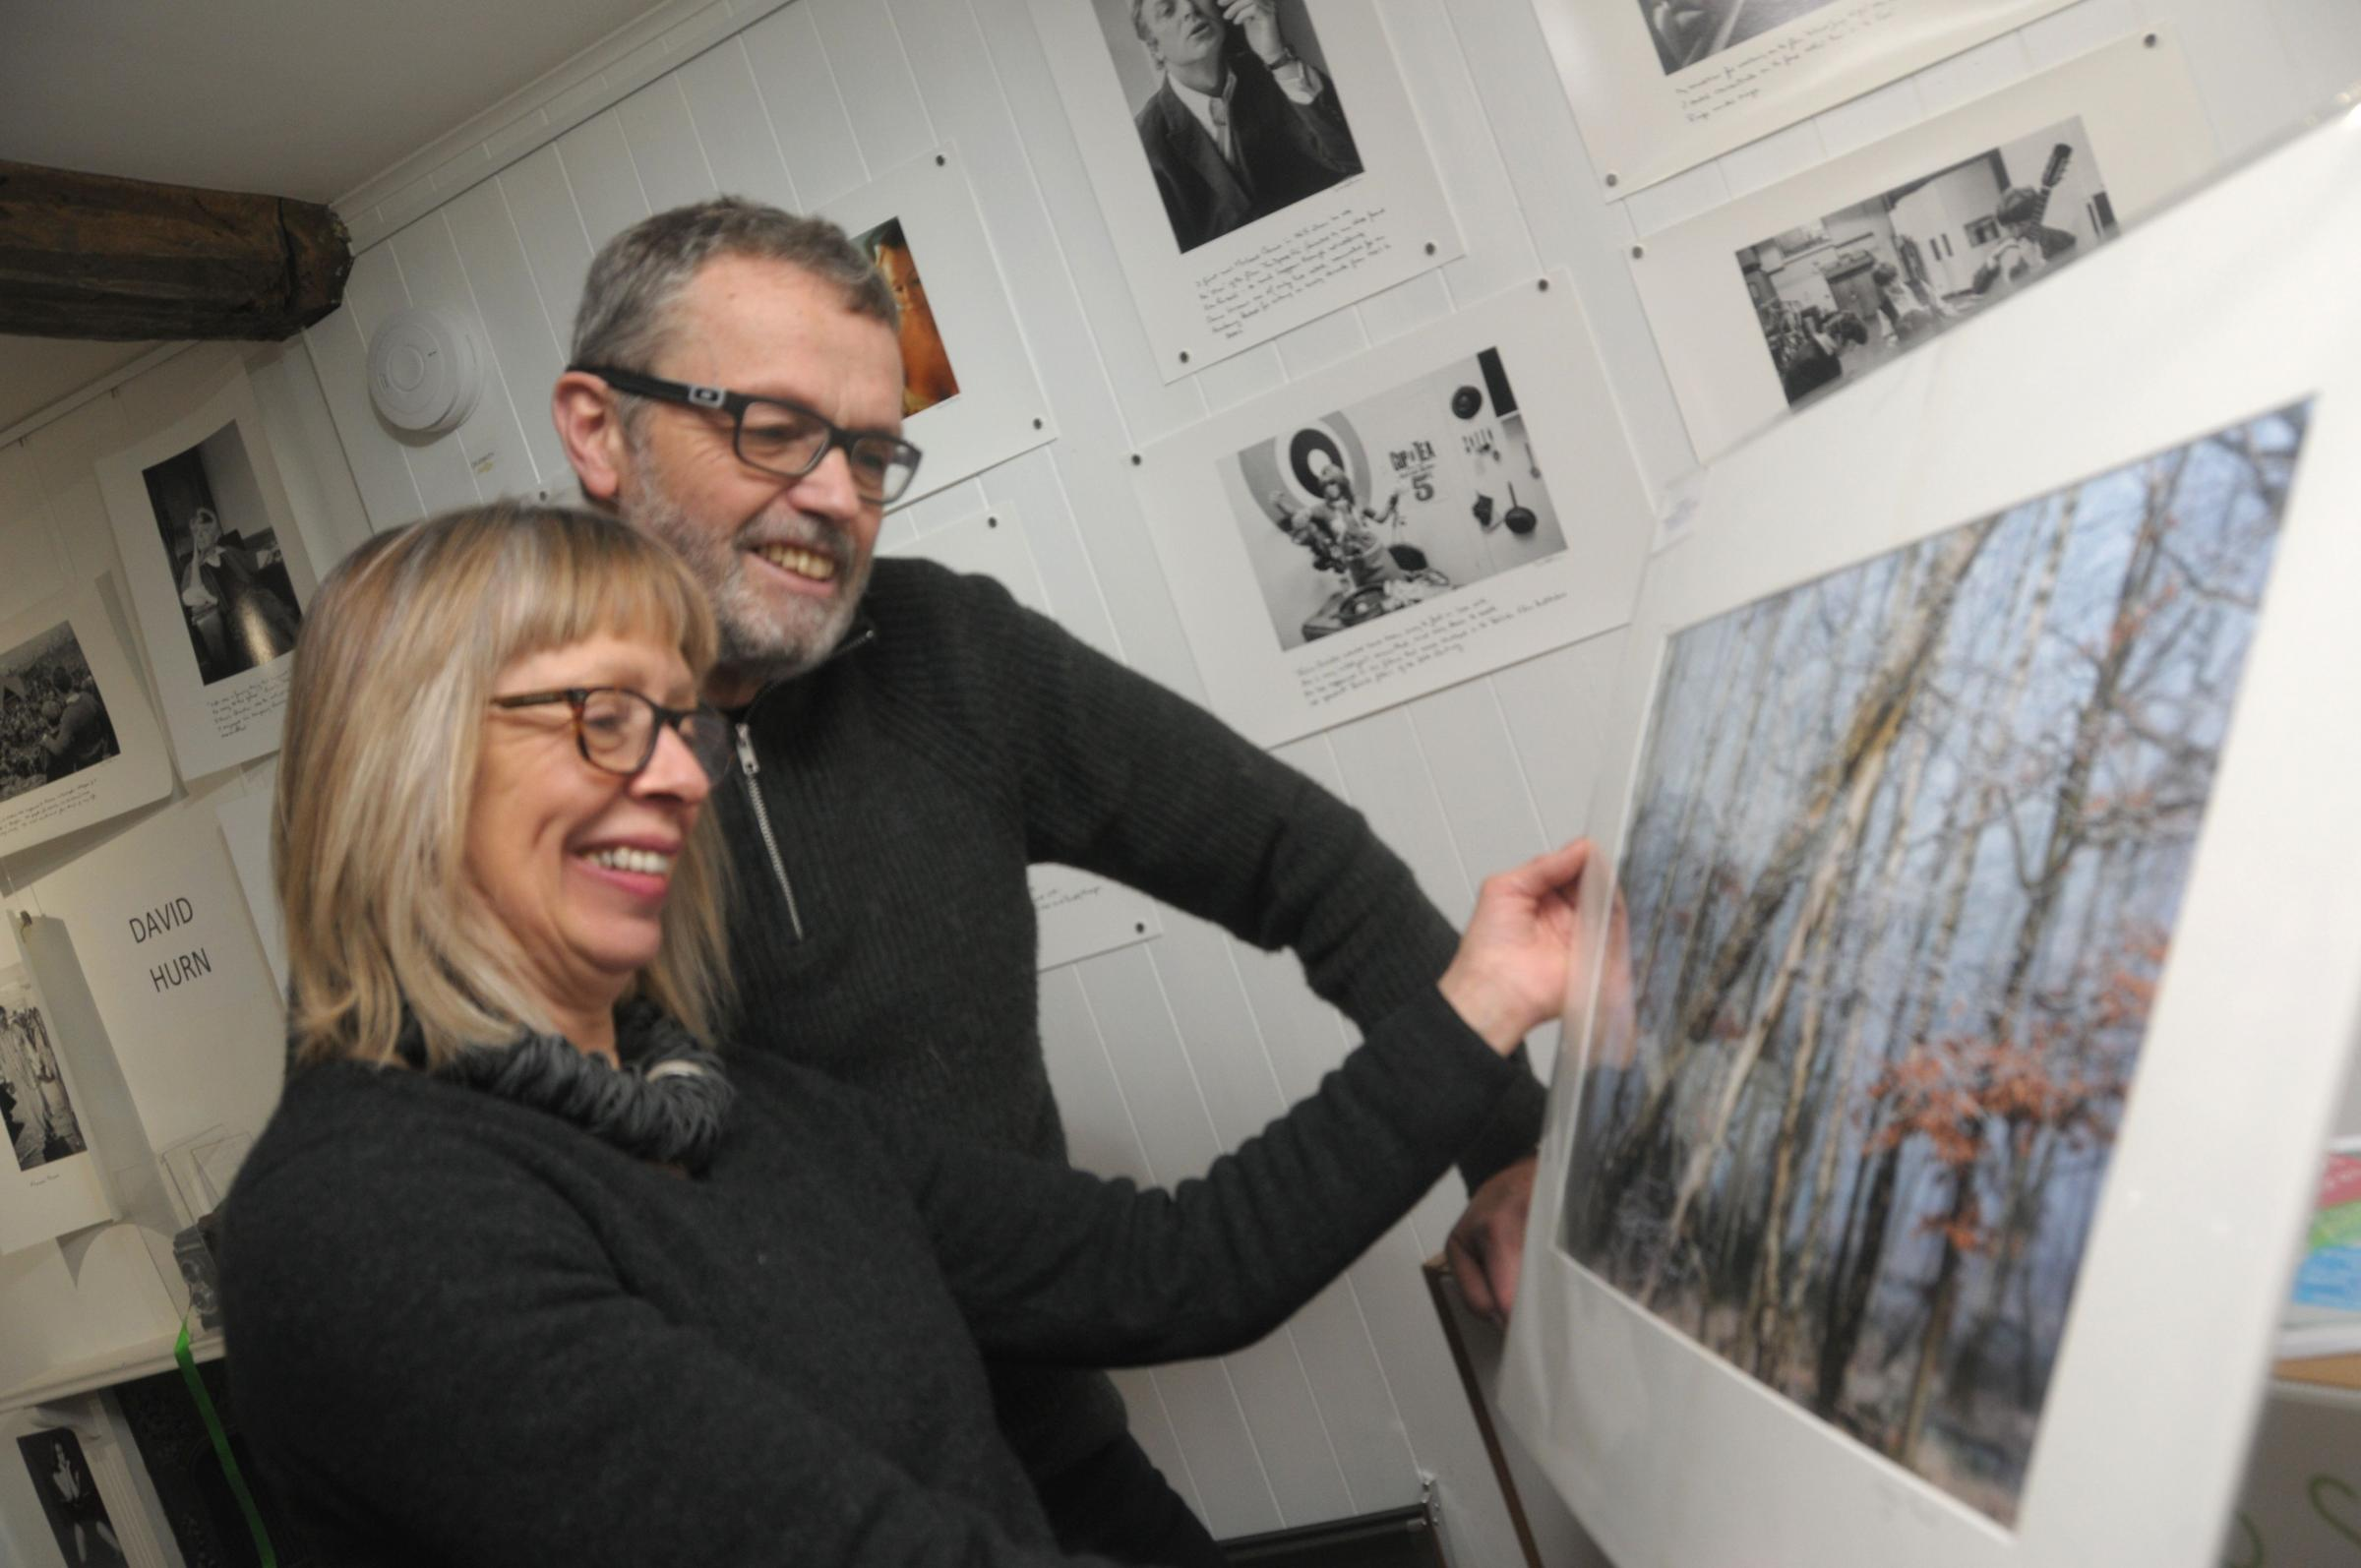 Admiring an image by Claire Carter while looking around the '1960's' exhibition at the Photospace Gallery are Mary and Hugh Elliott.